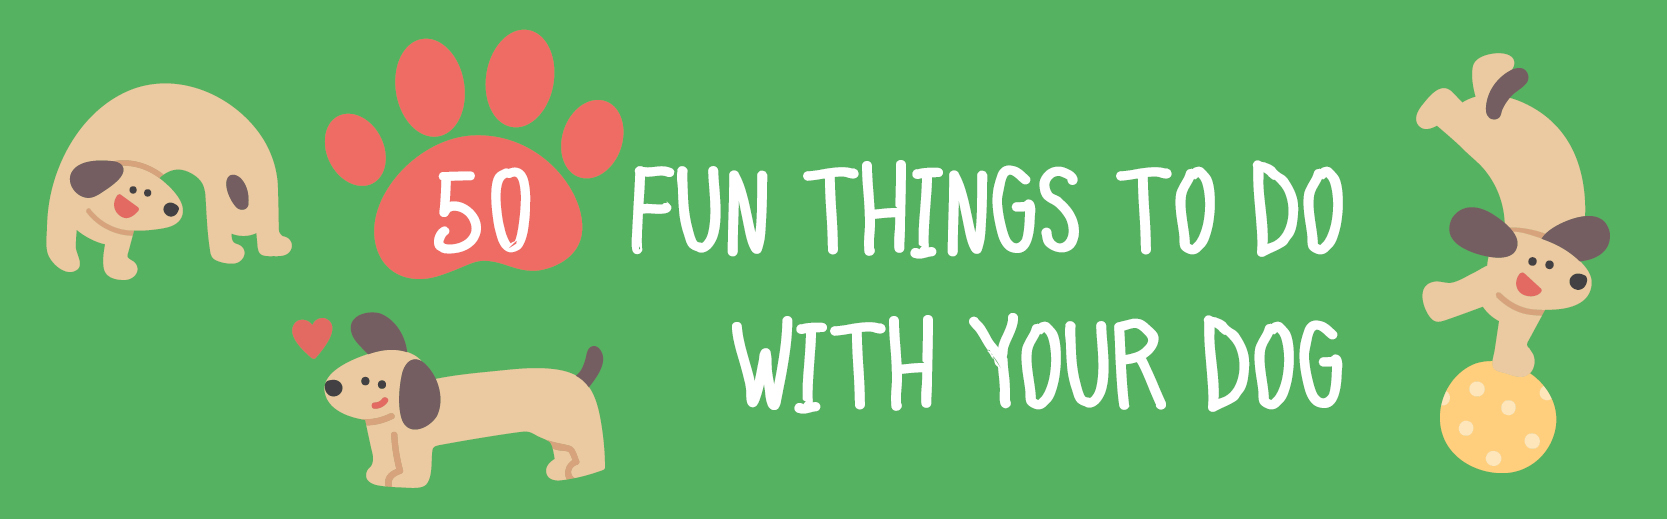 50 fun things to do with your dog - featured image